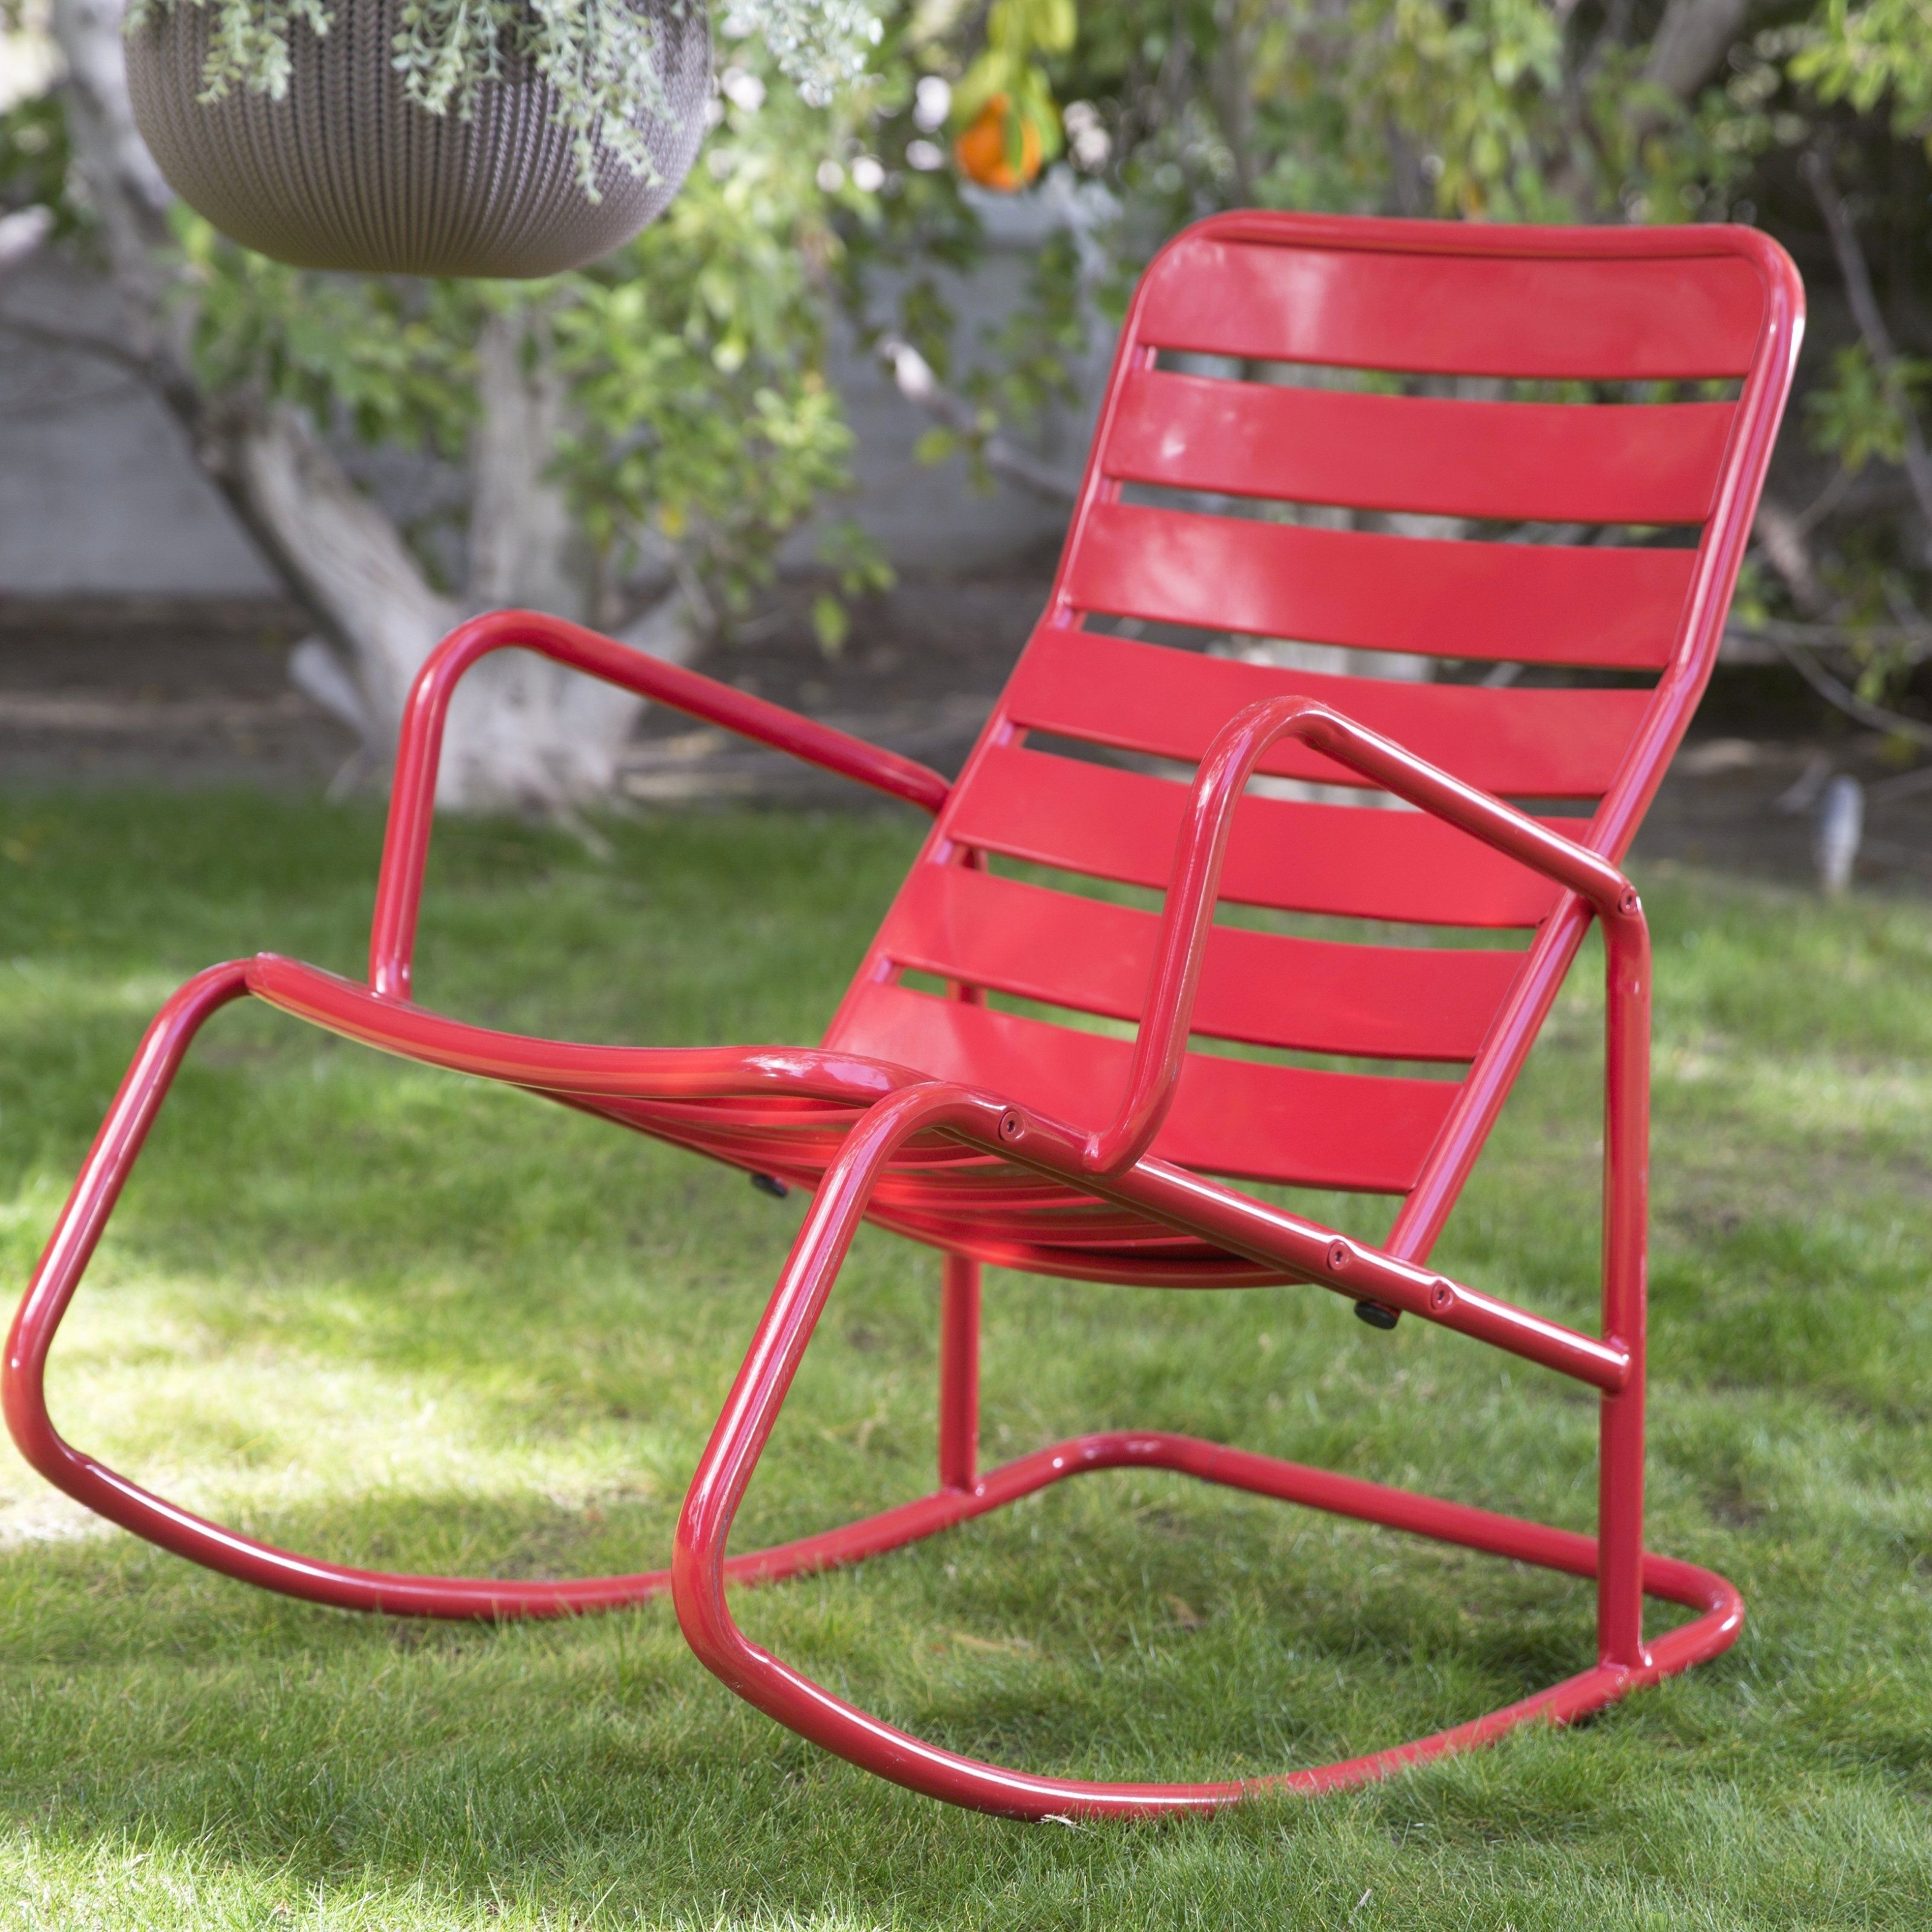 Famous Furniture: 5 Popular Best Outdoor Rocking Chairs 332Ndf In Garden In Rocking Chairs For Garden (View 4 of 15)